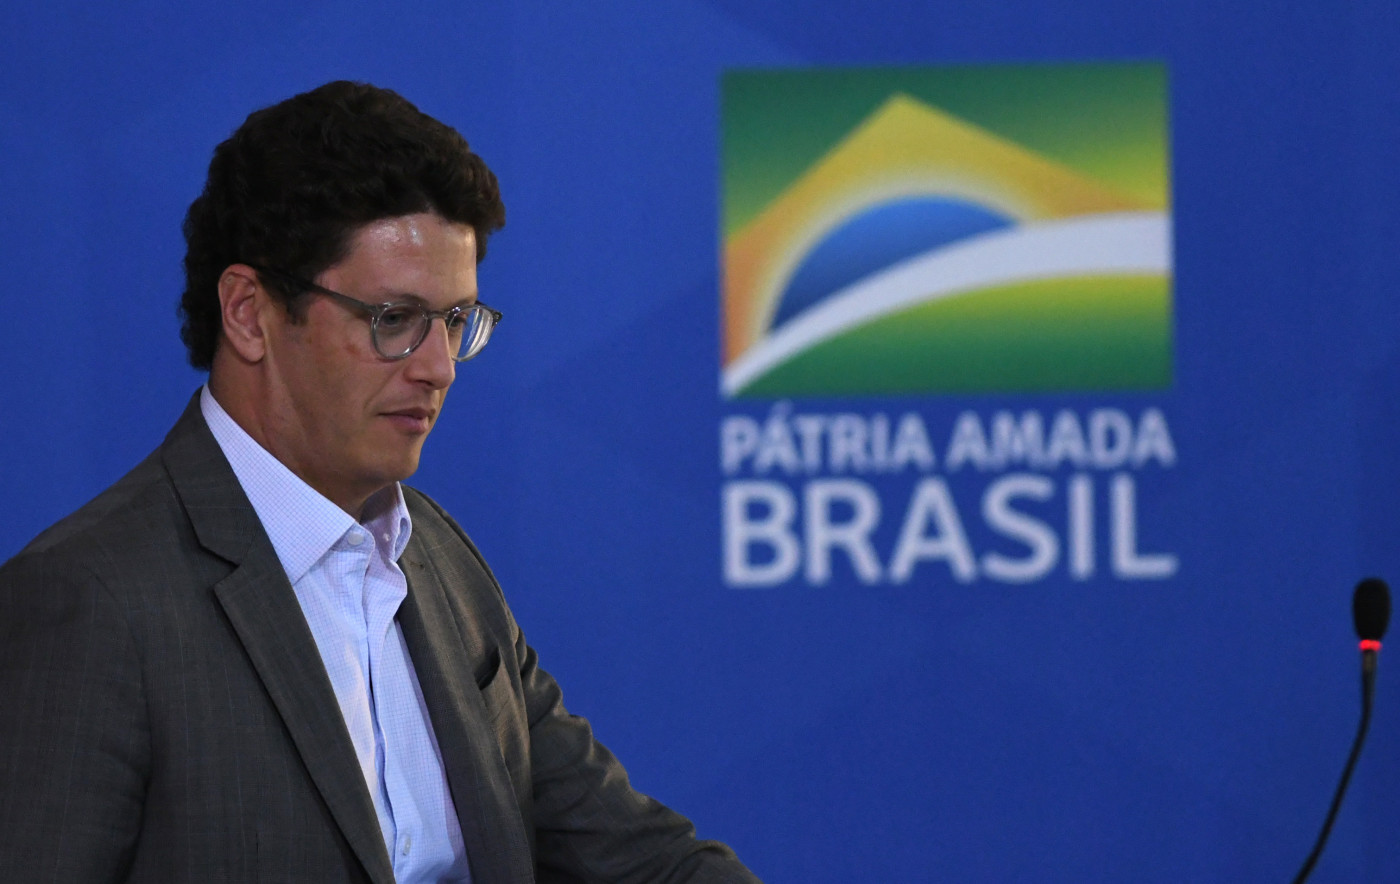 O ministro do meio ambiente, Ricardo Salles, durante evento do governo federal